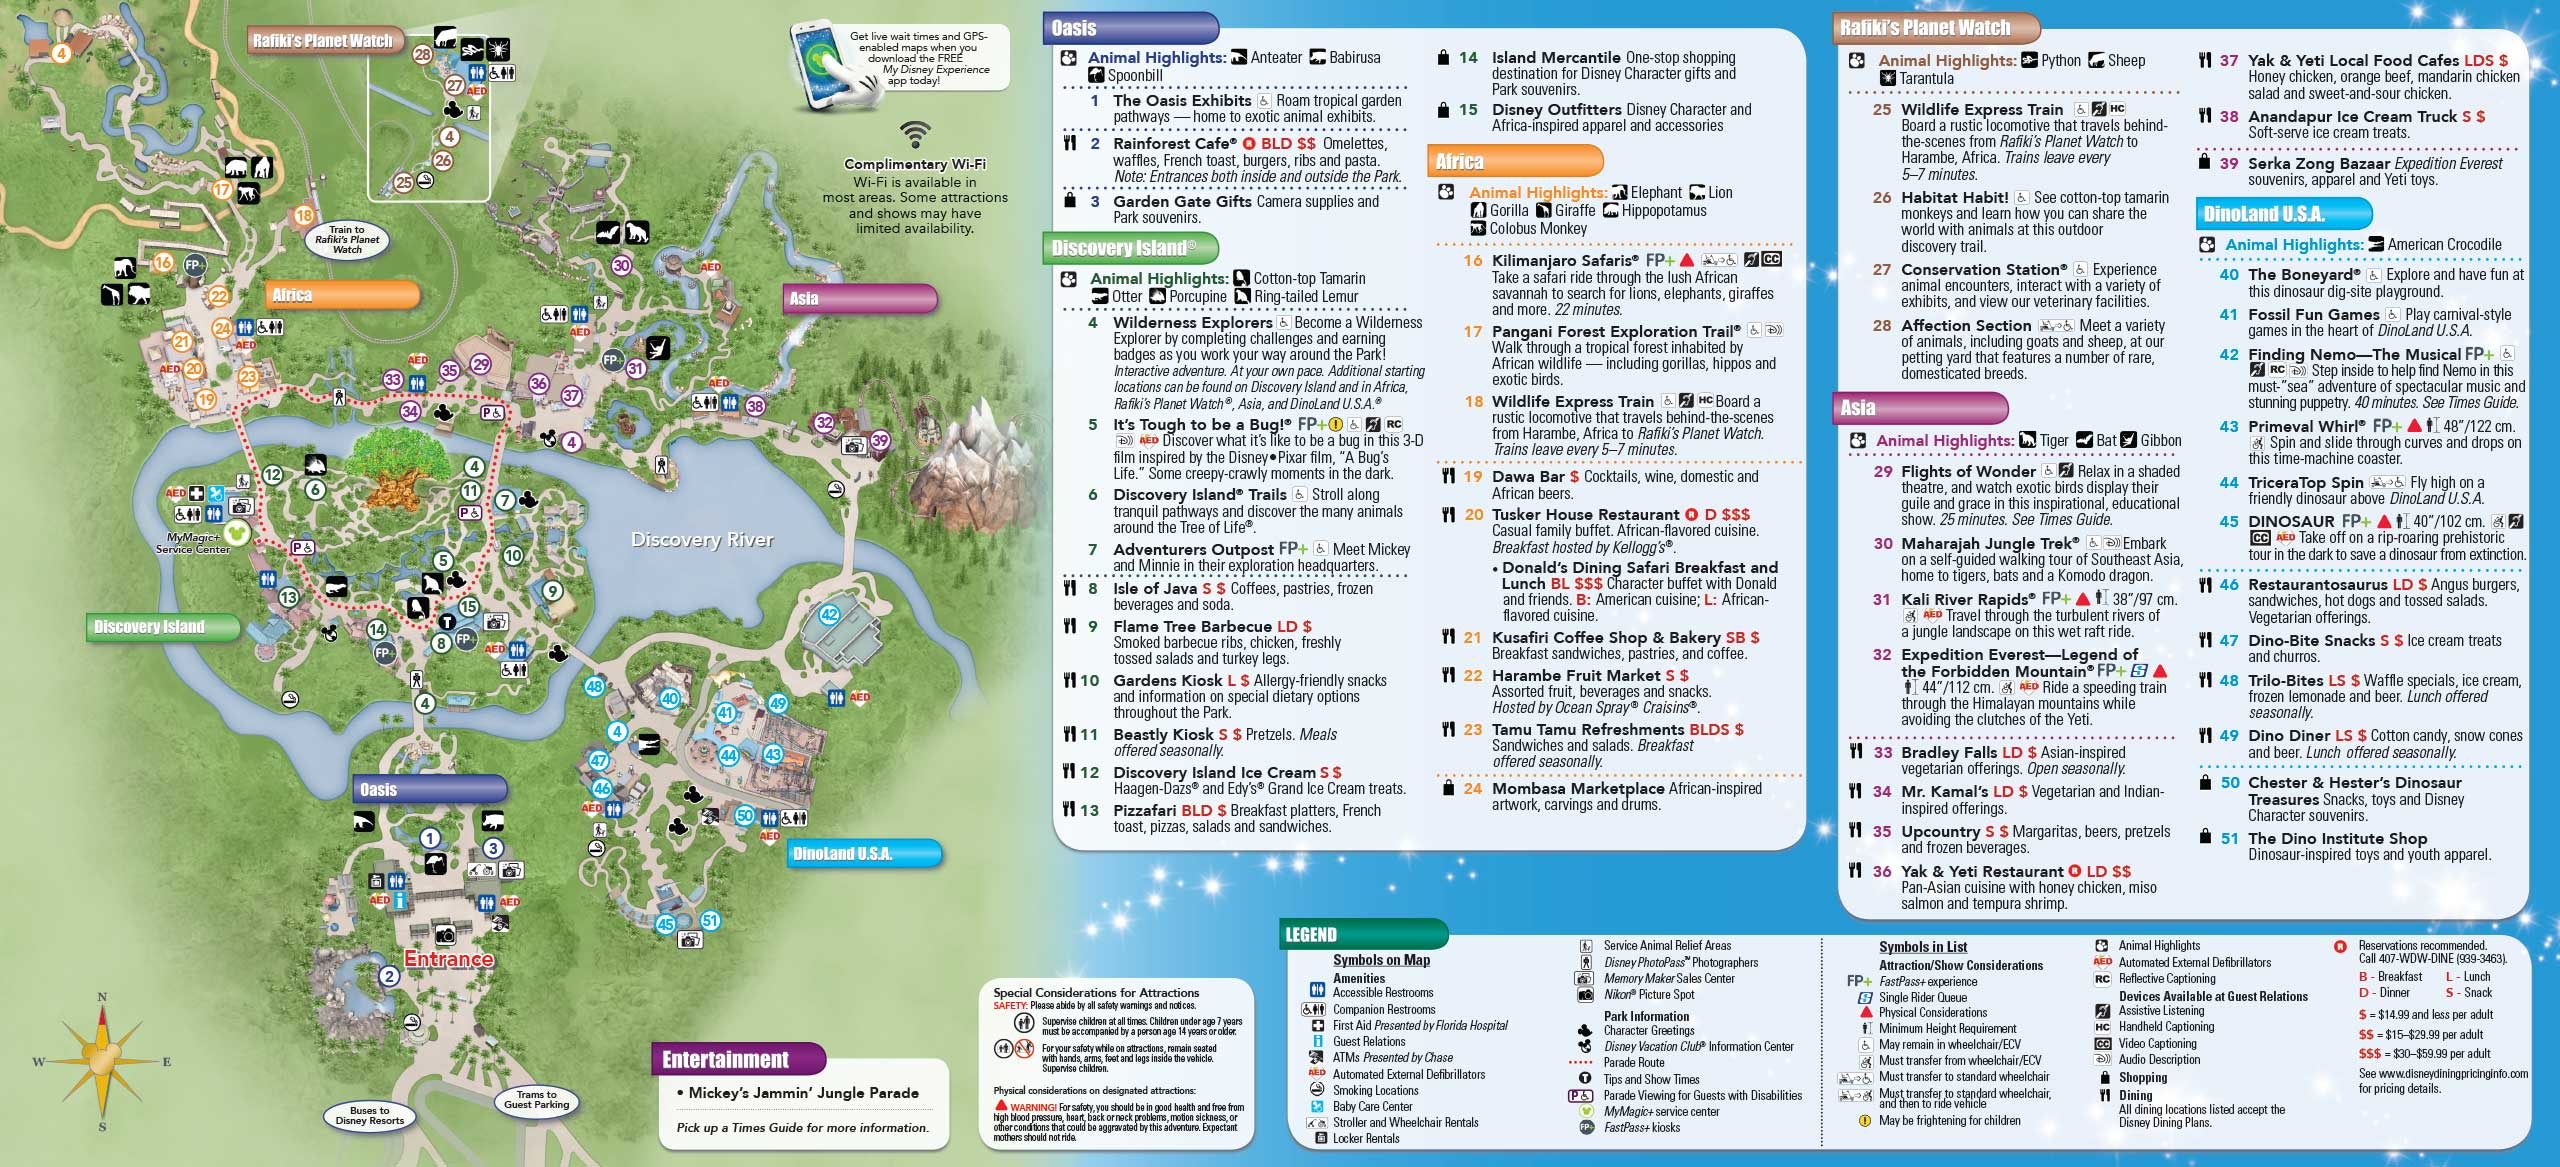 2014 walt disney world park maps with fastpass photo 2 of 8 2014 walt disney world park maps with fastpass gumiabroncs Choice Image